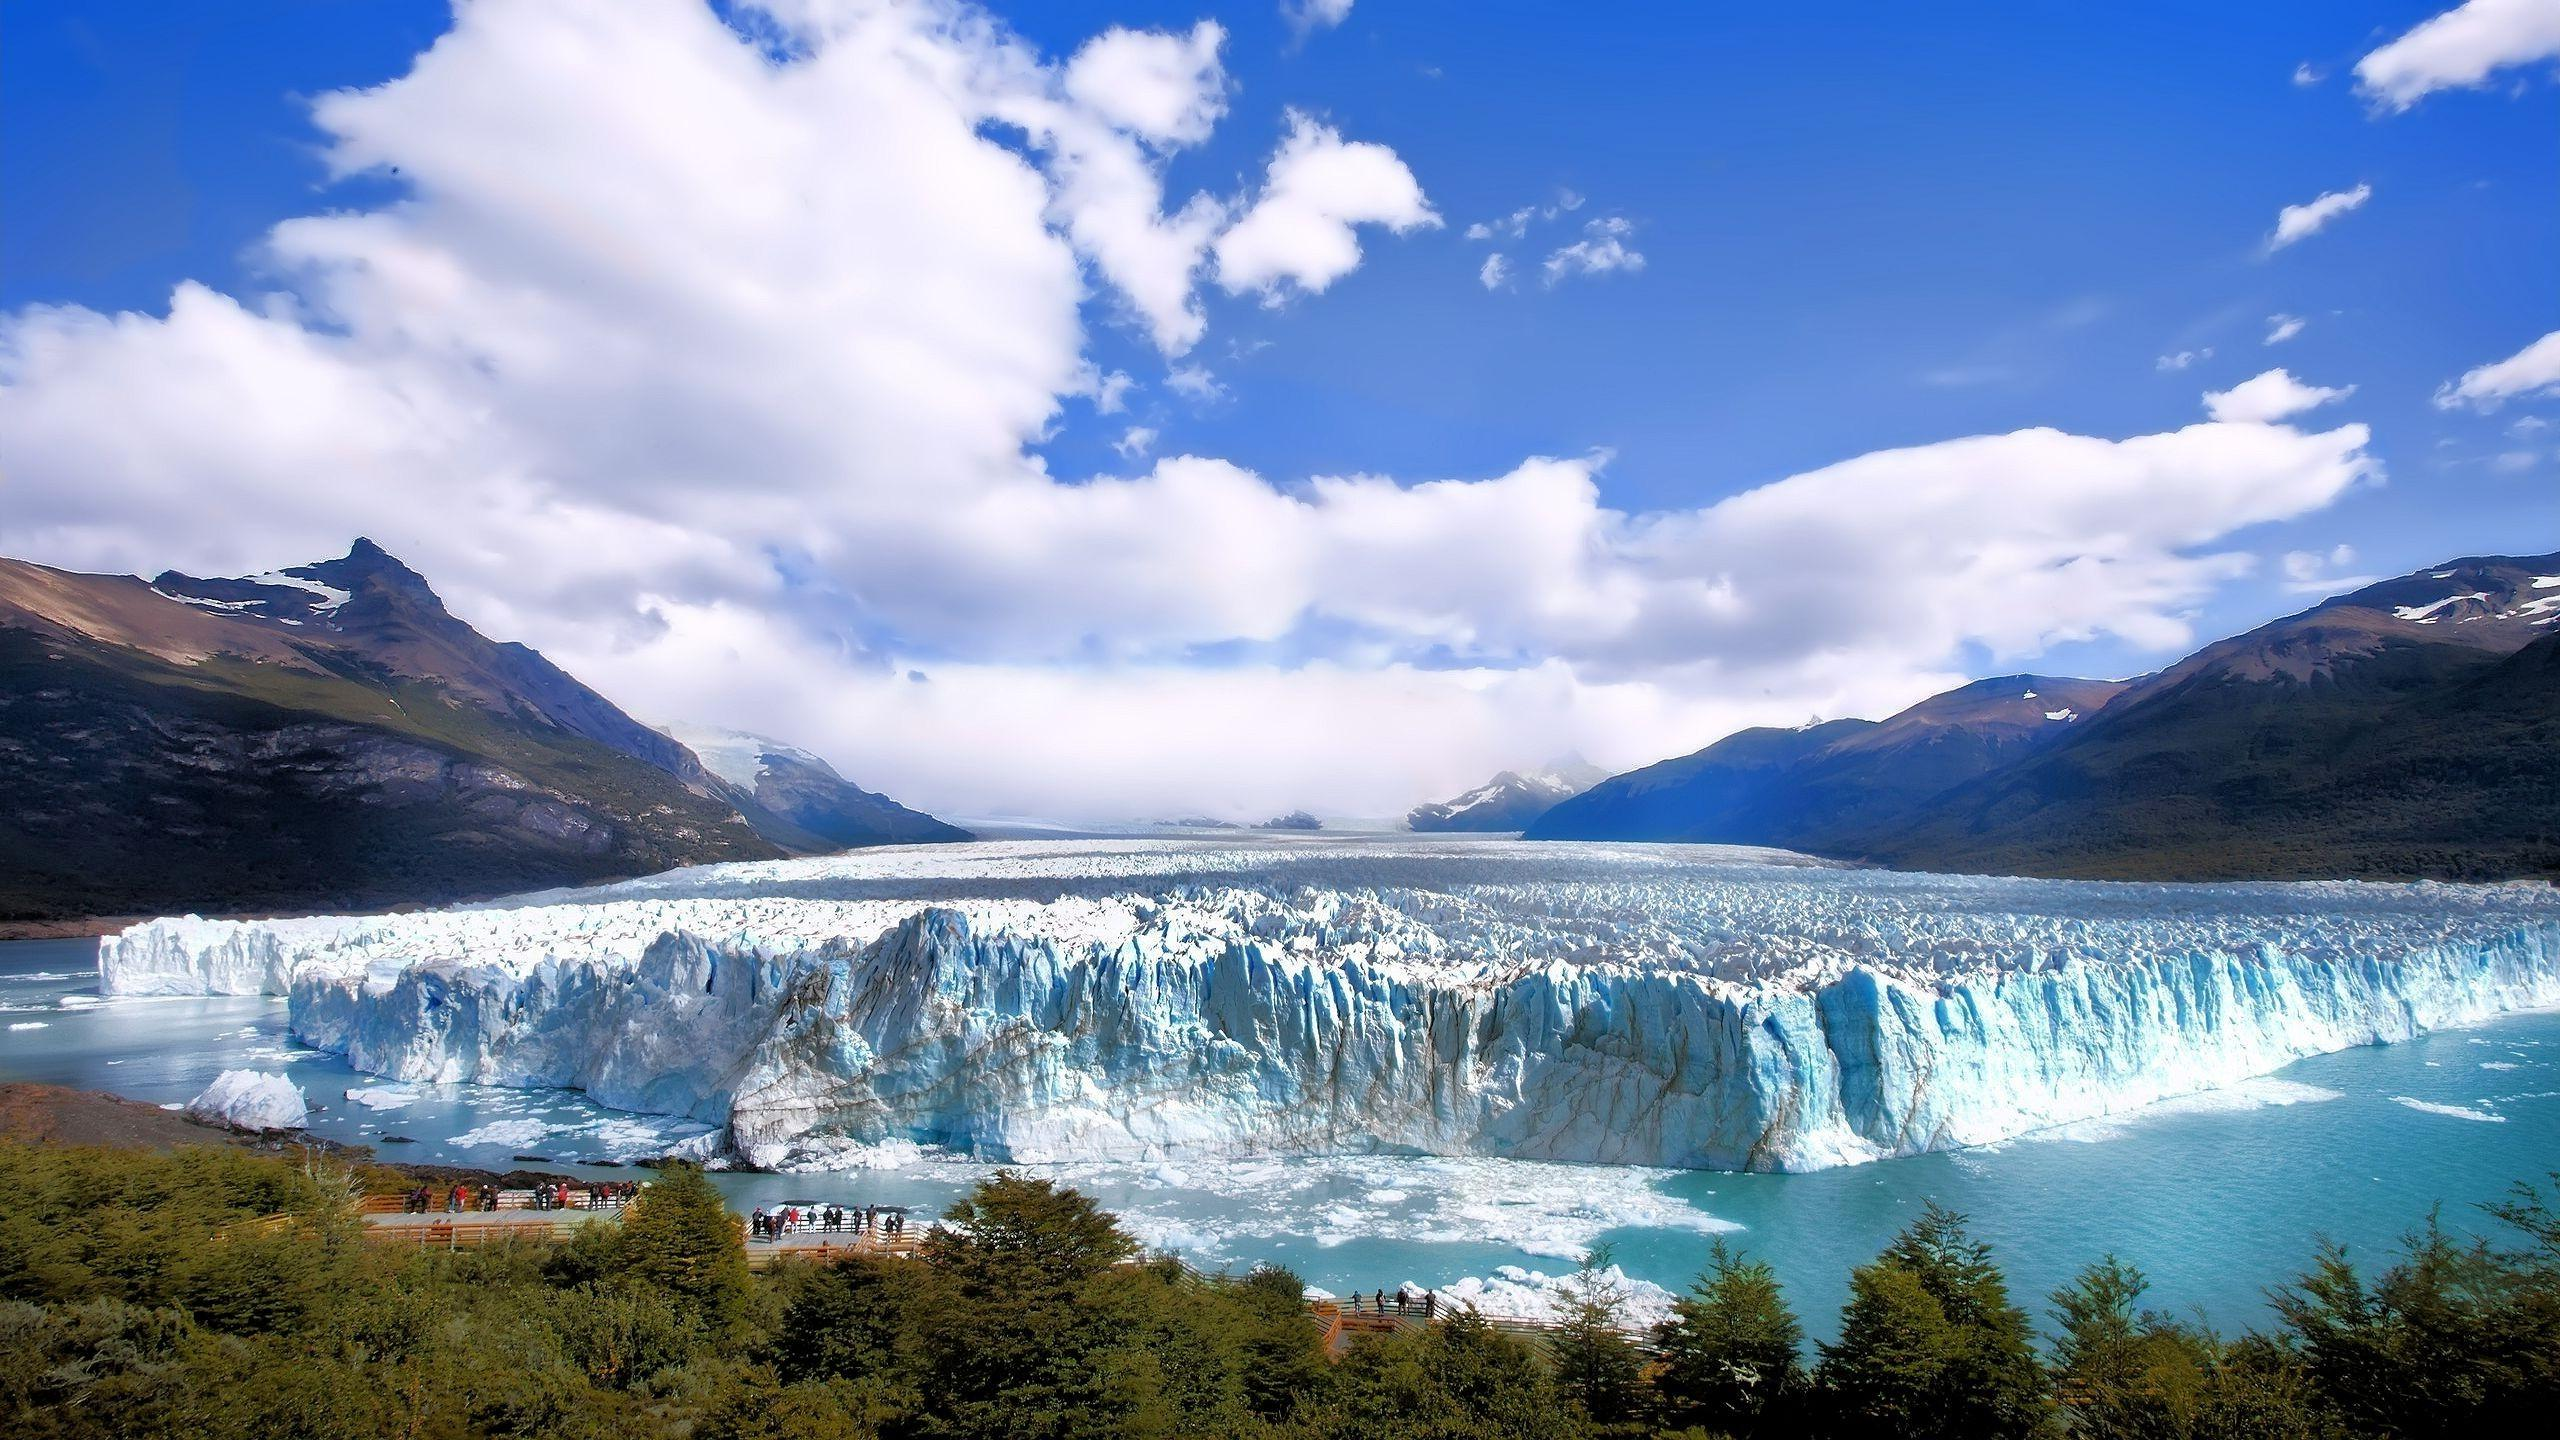 argentina landscape nature glaciers wallpaper and background